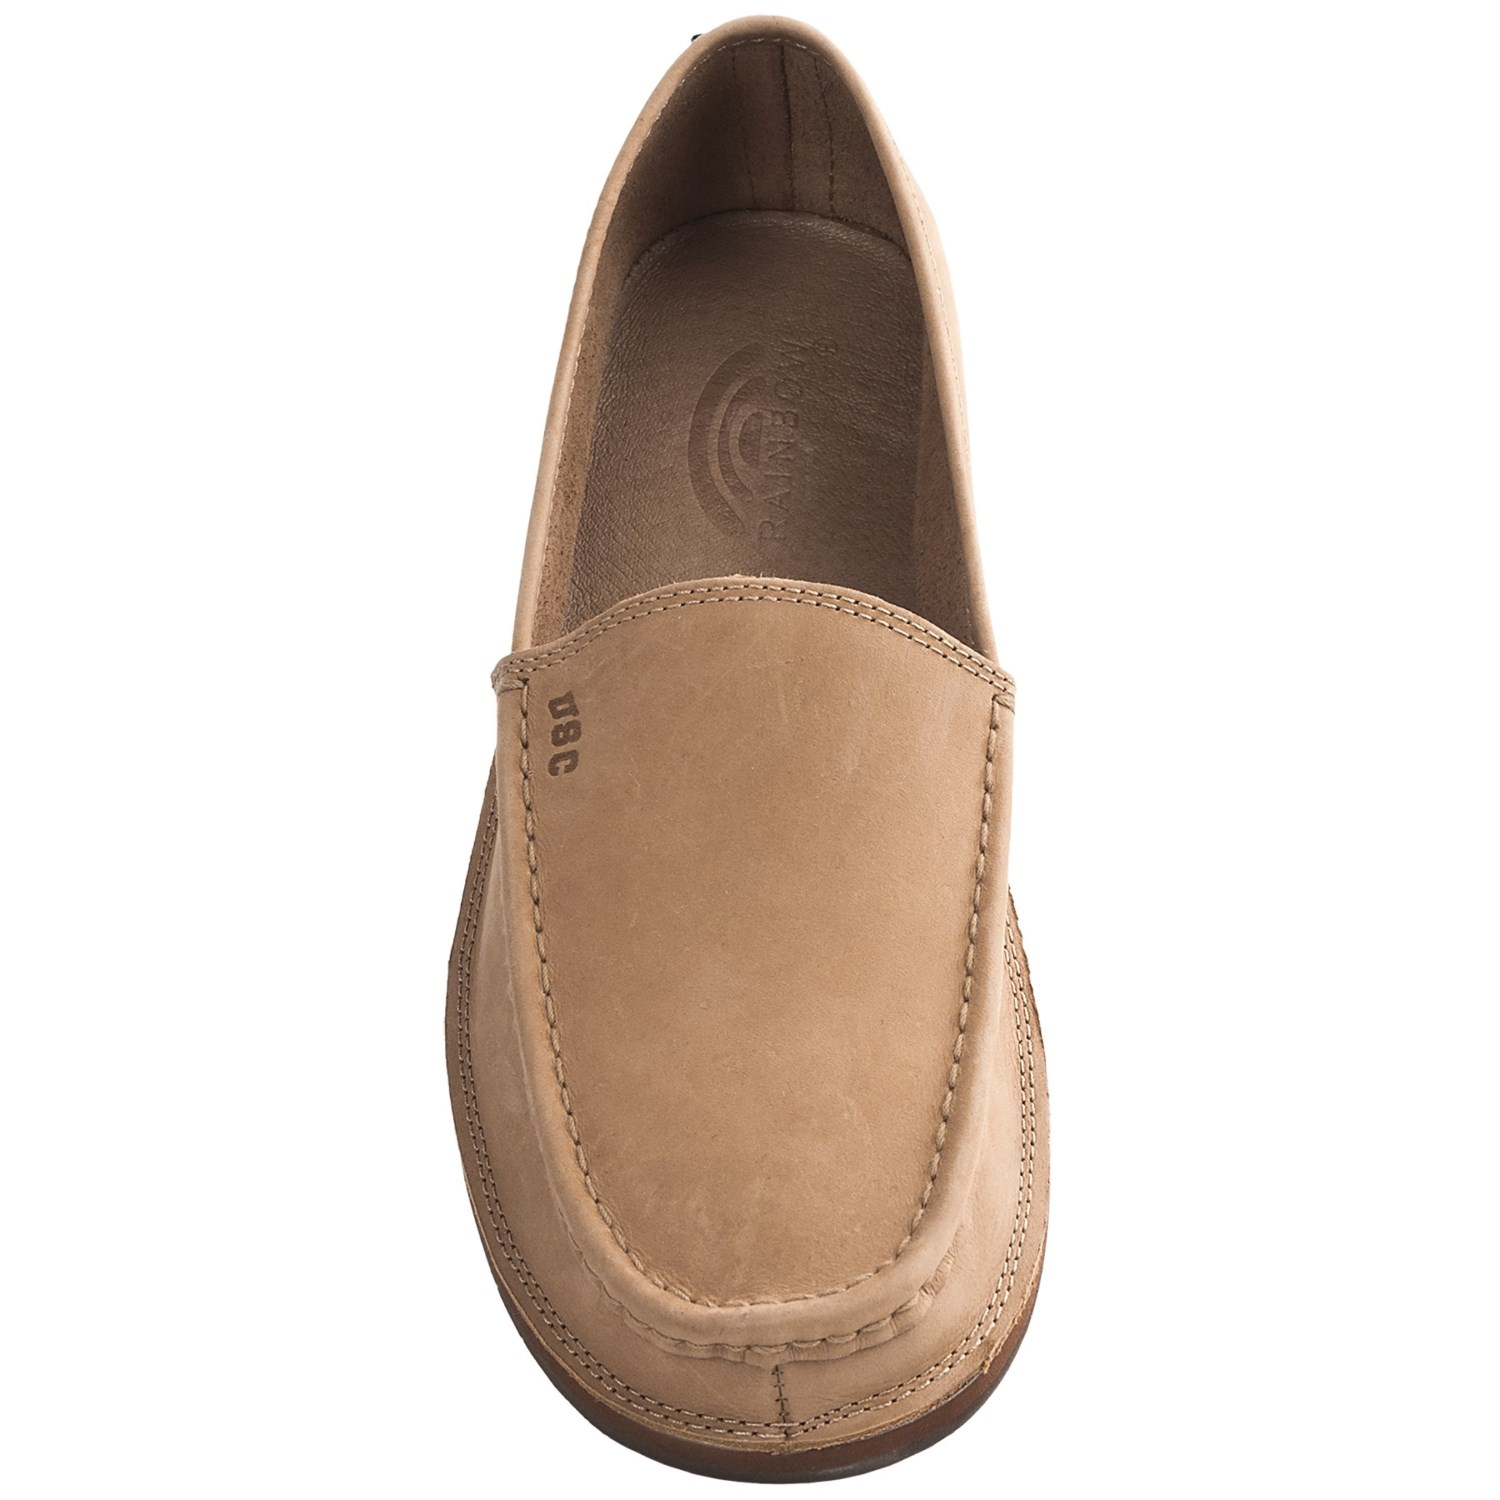 rainbow sandals comfort classic college logo loafer shoes